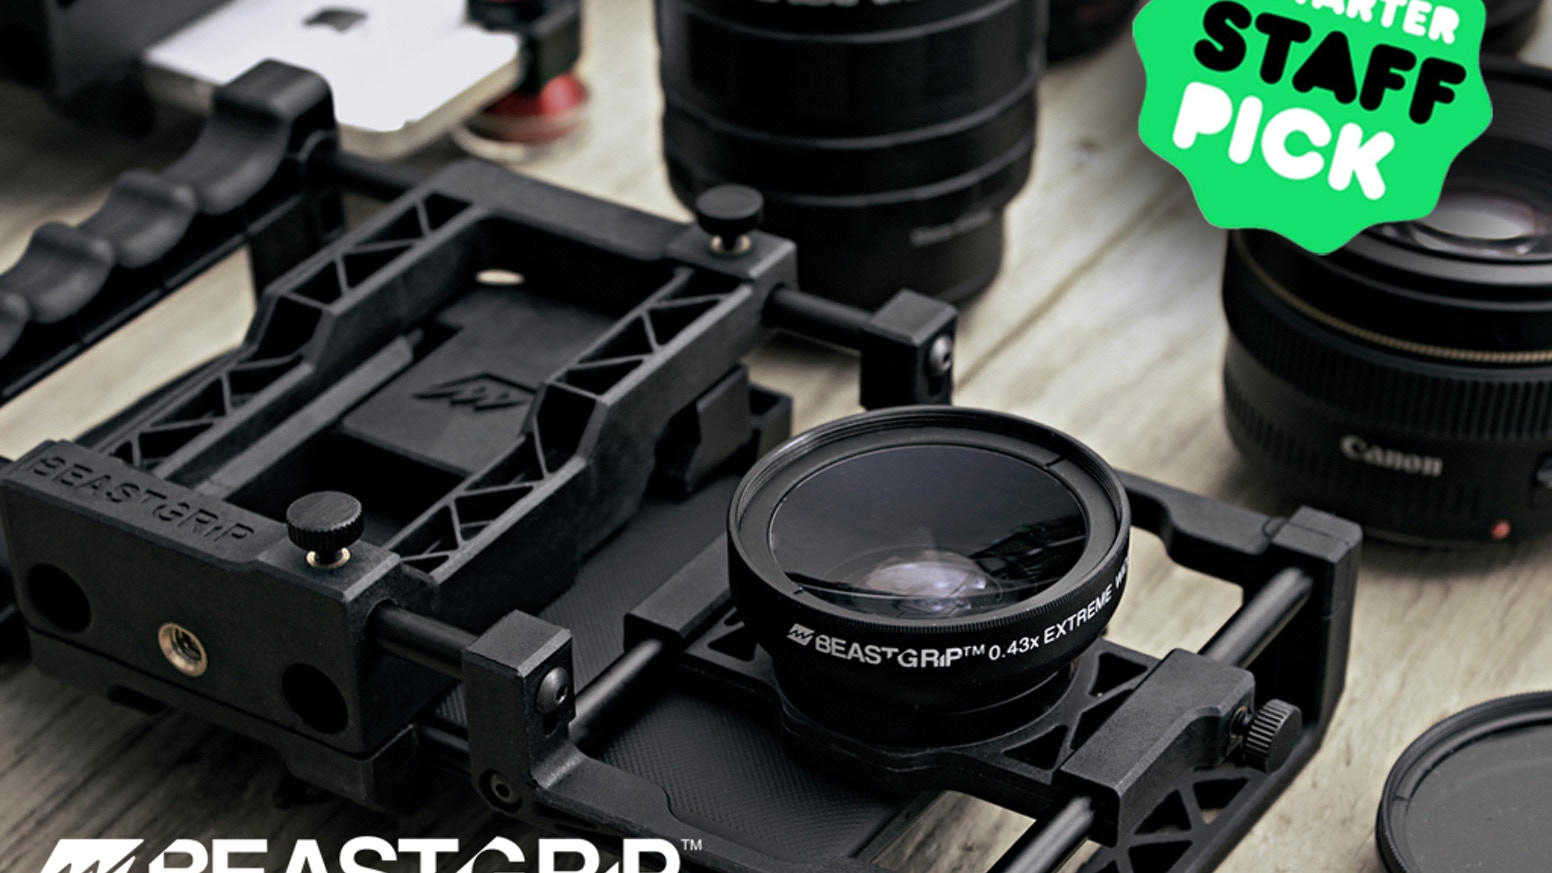 Beastgrip Pro the world's best camera rig for smartphones by